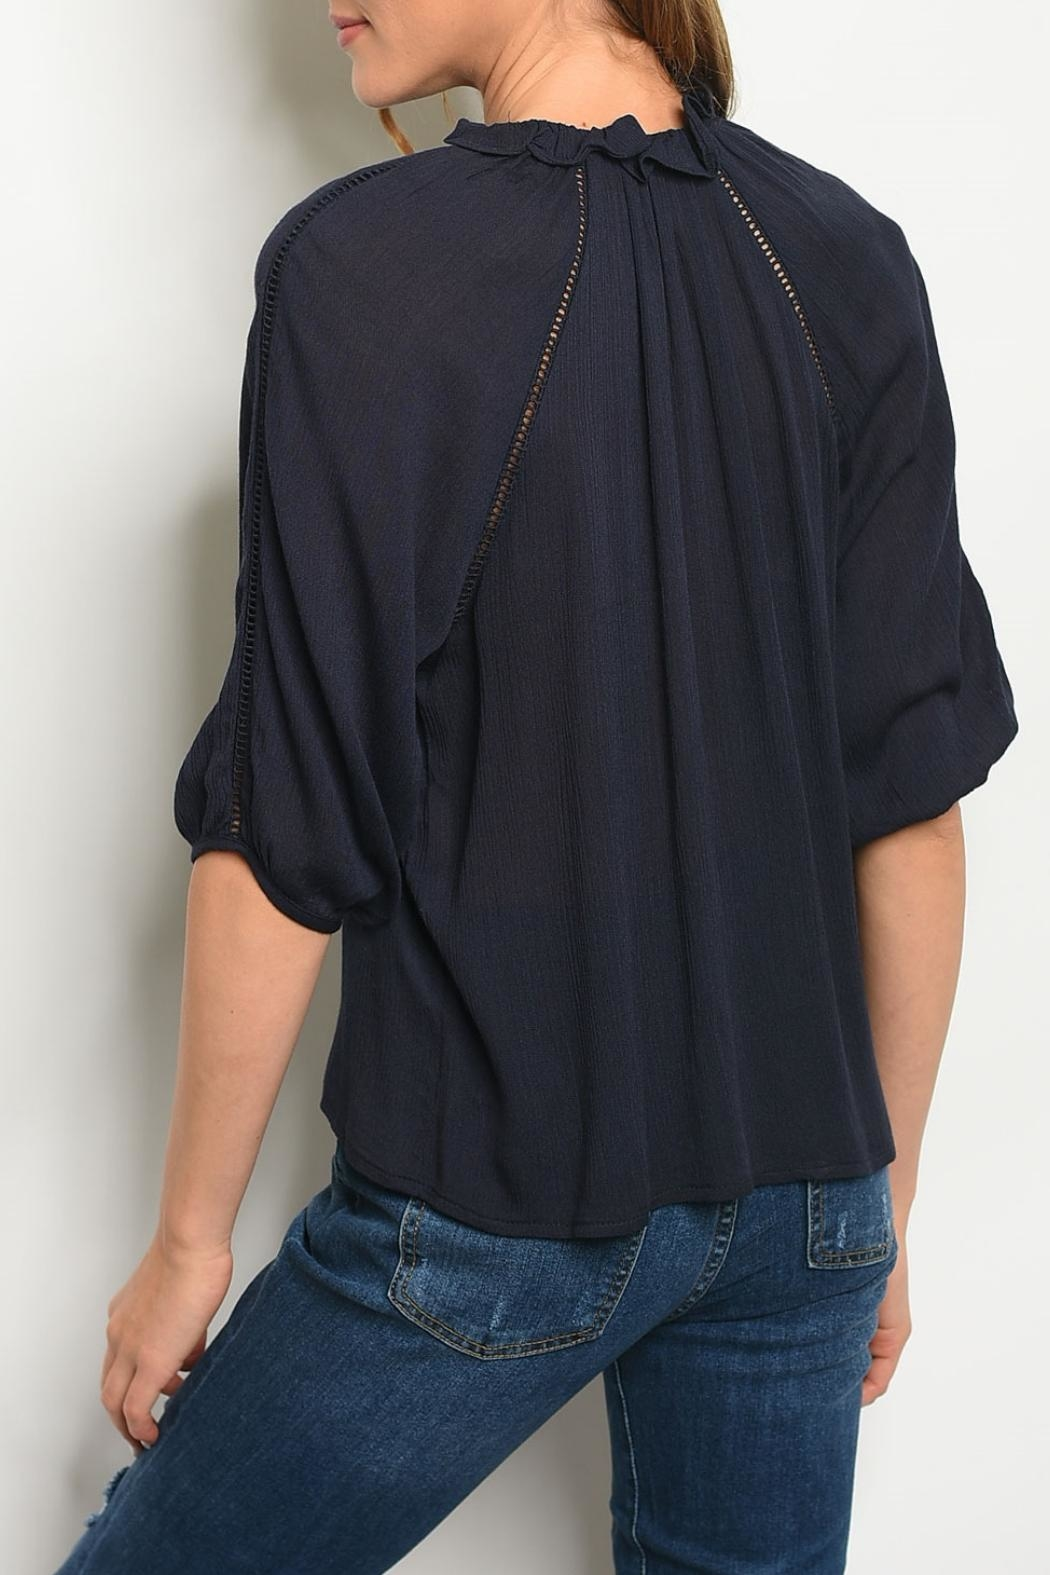 Roly Poly Navy Tie Blouse - Front Full Image